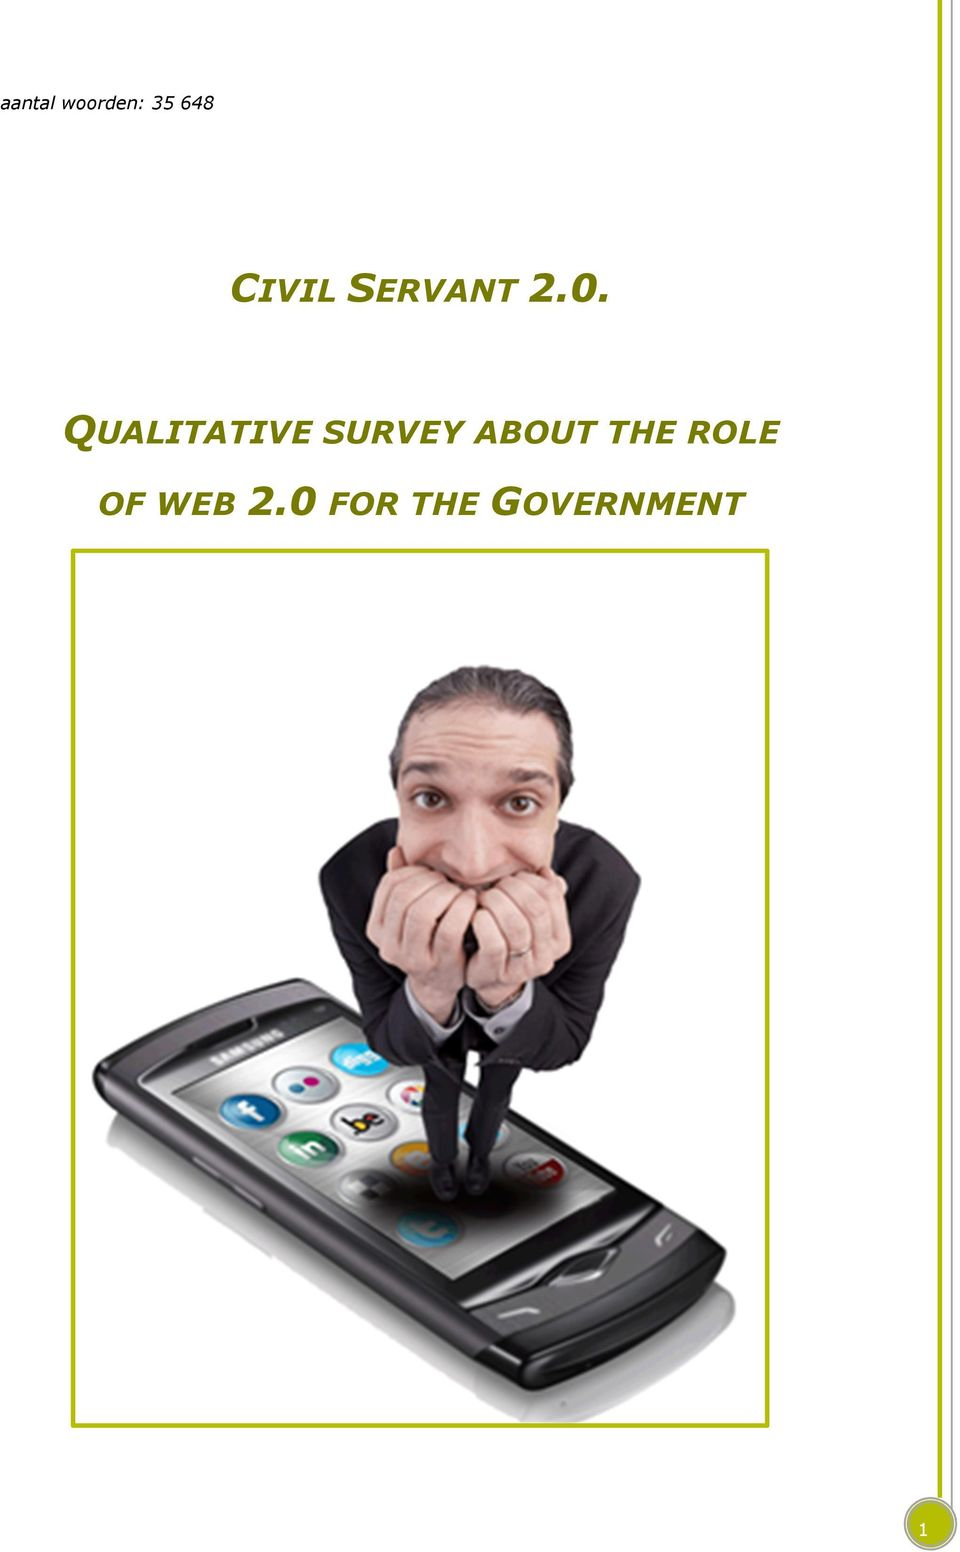 QUALITATIVE SURVEY ABOUT